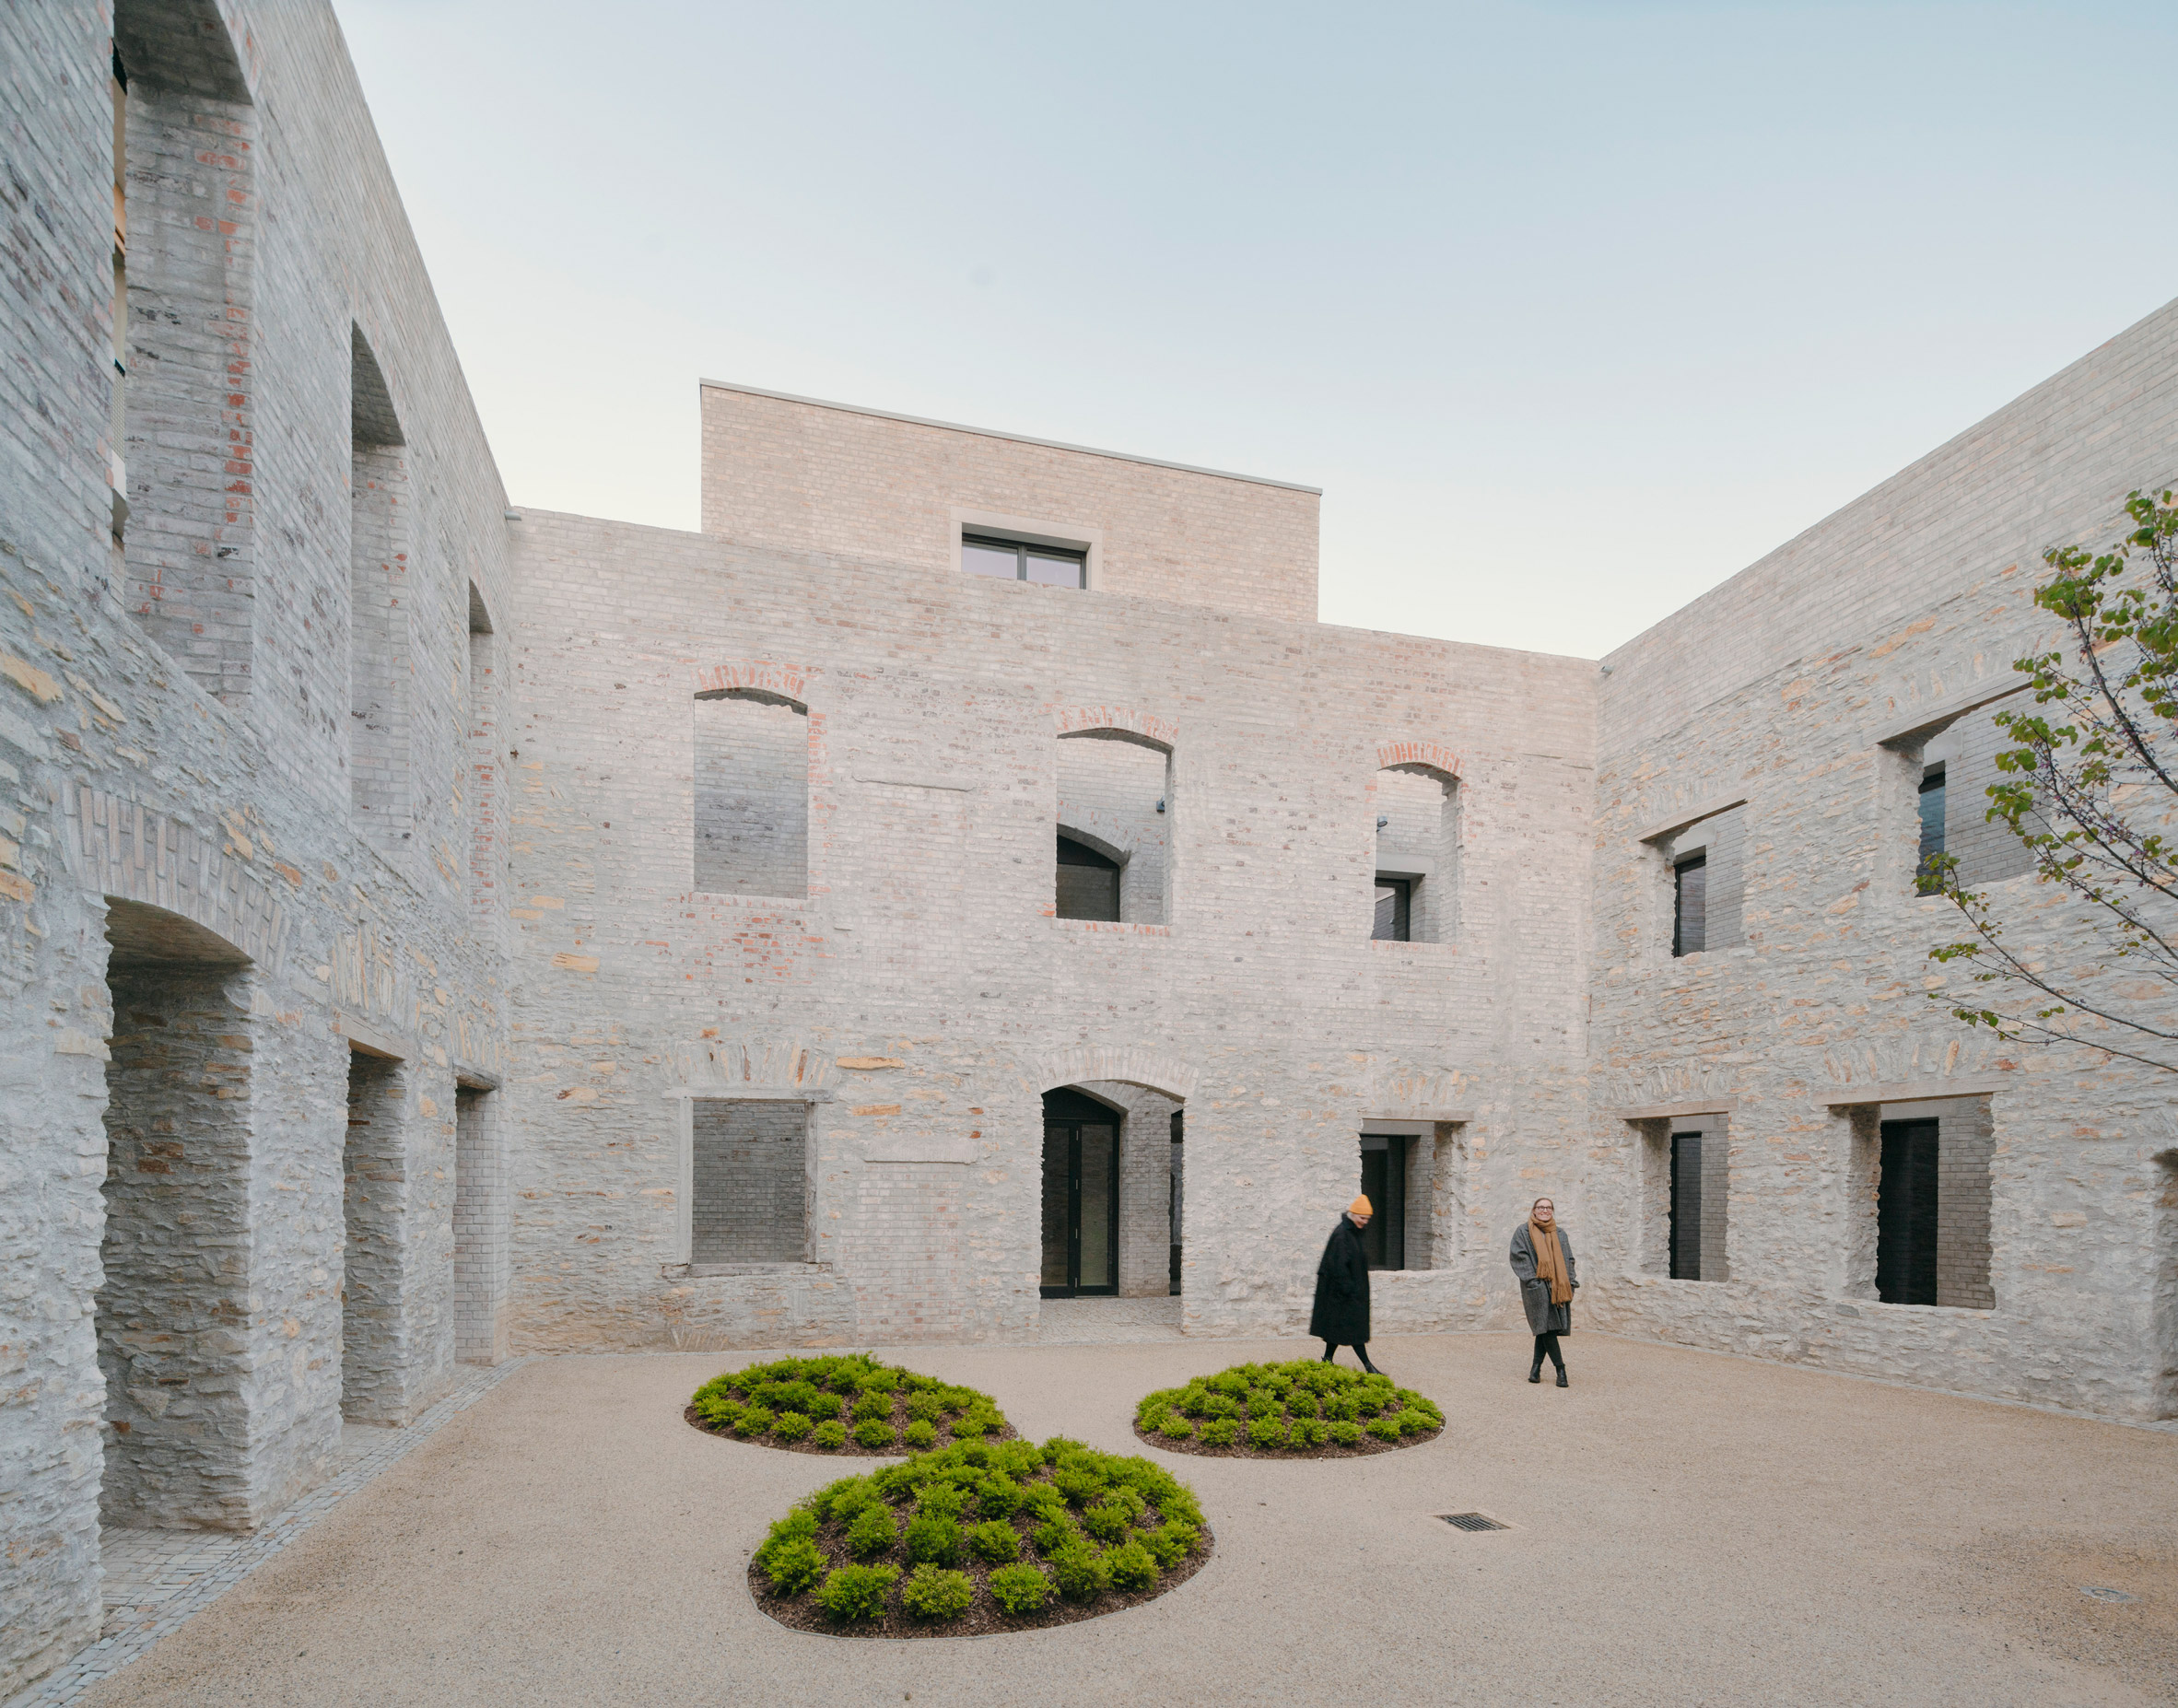 Jacoby Studios by David Chipperfield Architects section a